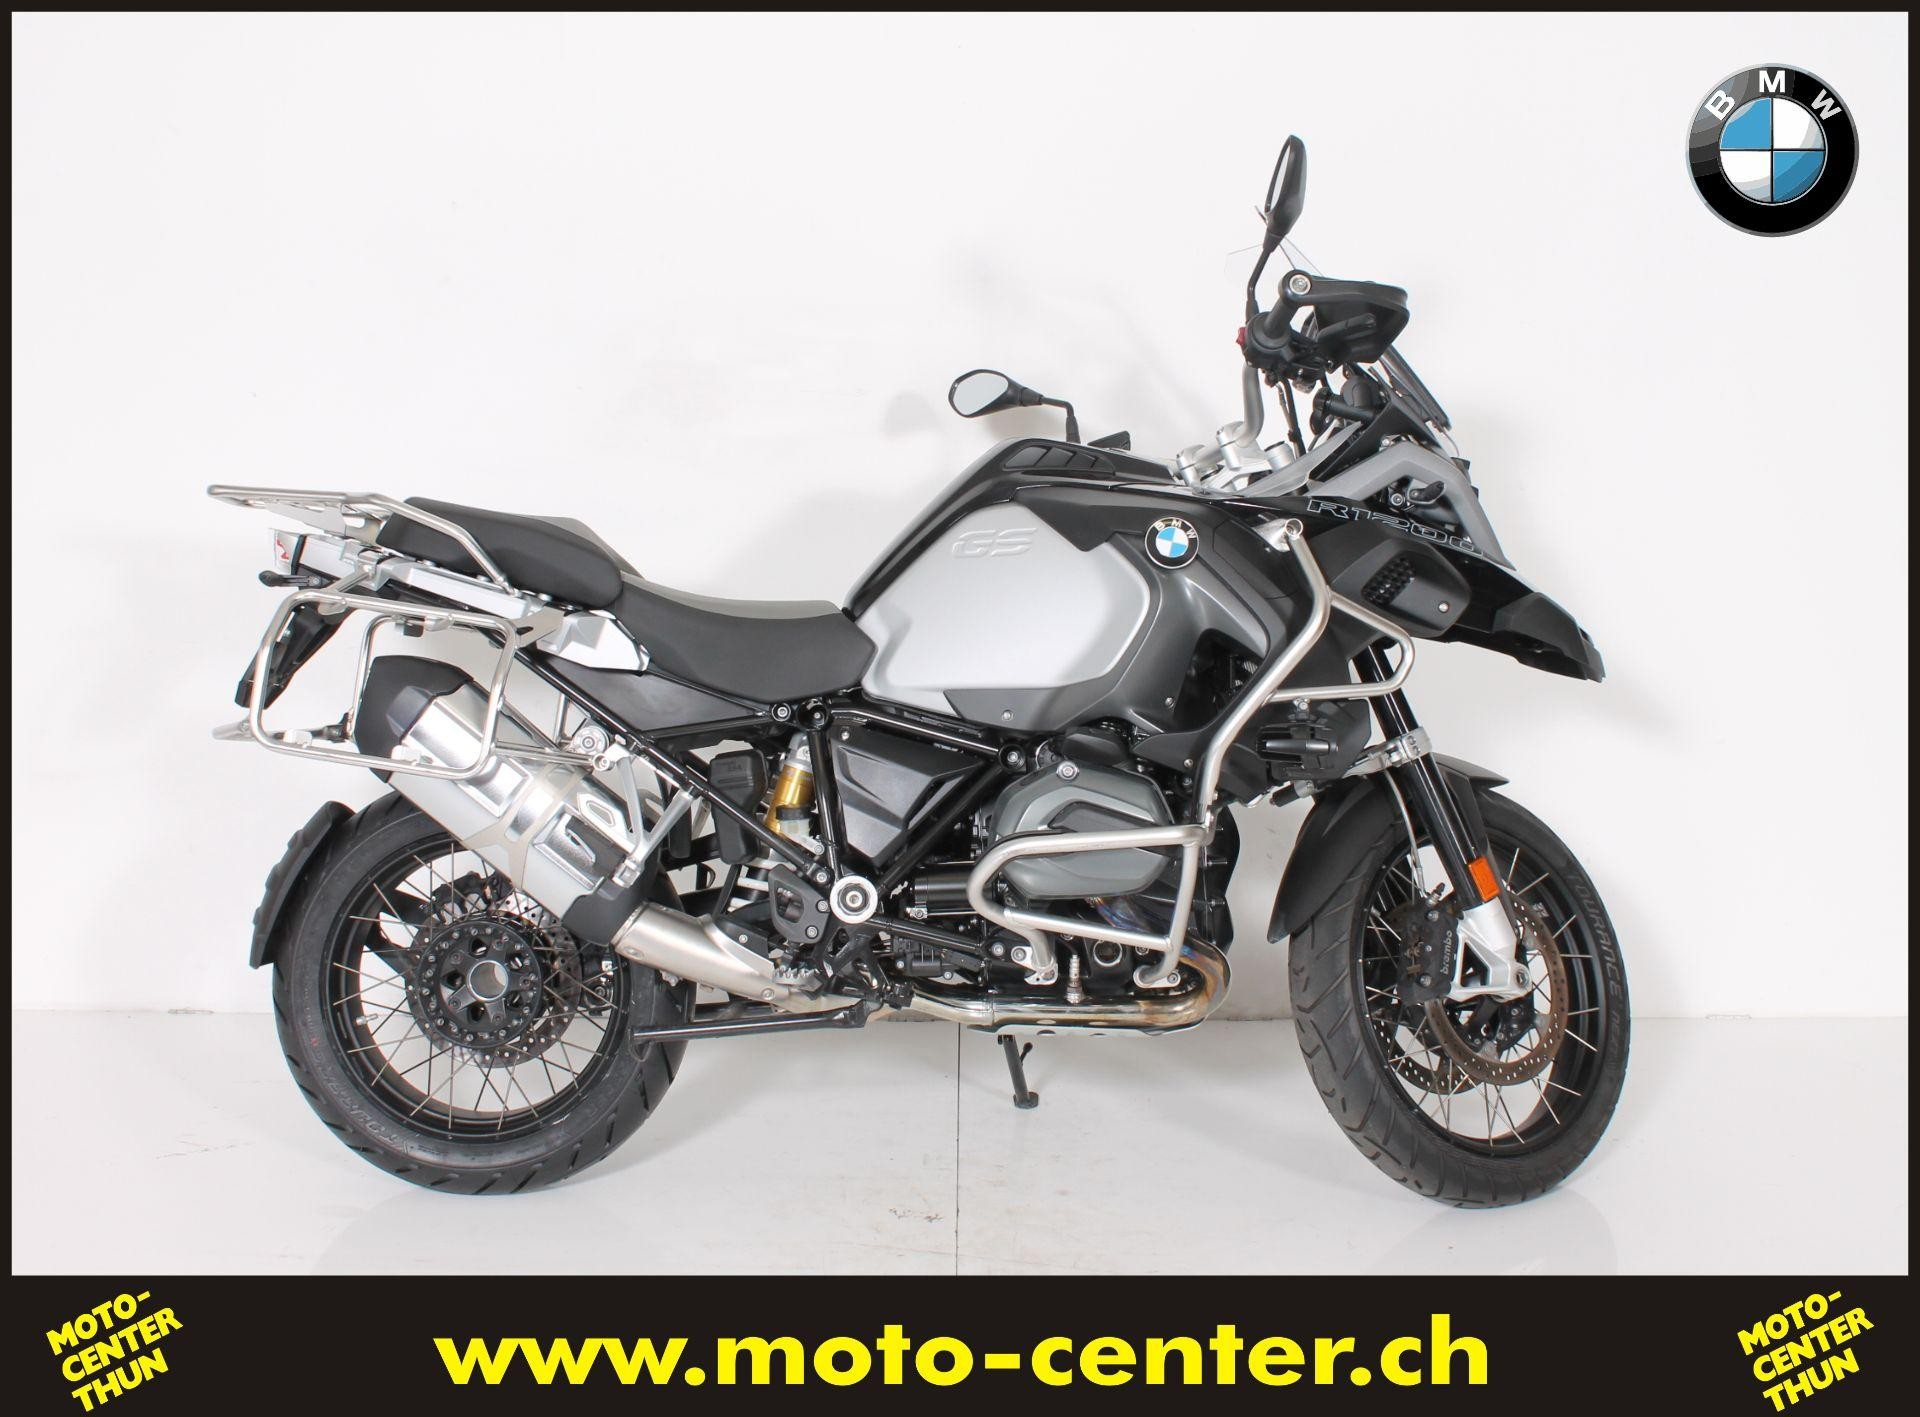 motorrad occasion kaufen bmw r 1200 gs adventure abs ab chf pro monat moto center thun. Black Bedroom Furniture Sets. Home Design Ideas